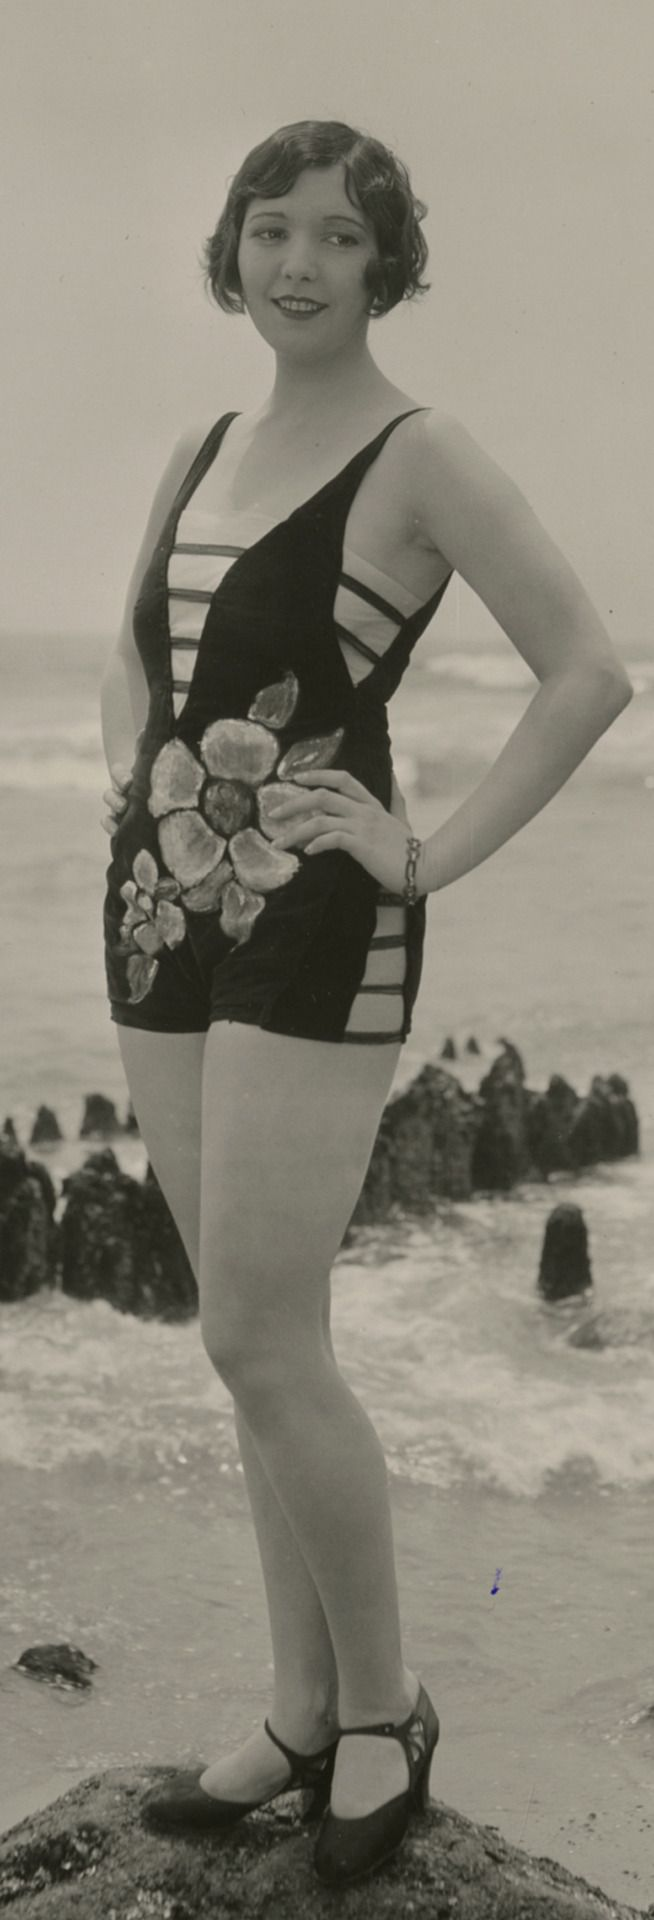 1920s Exceedingly Risque' Bathing Suit..........Mack Sennett Beauty, Thelma Parr, by George Cannons